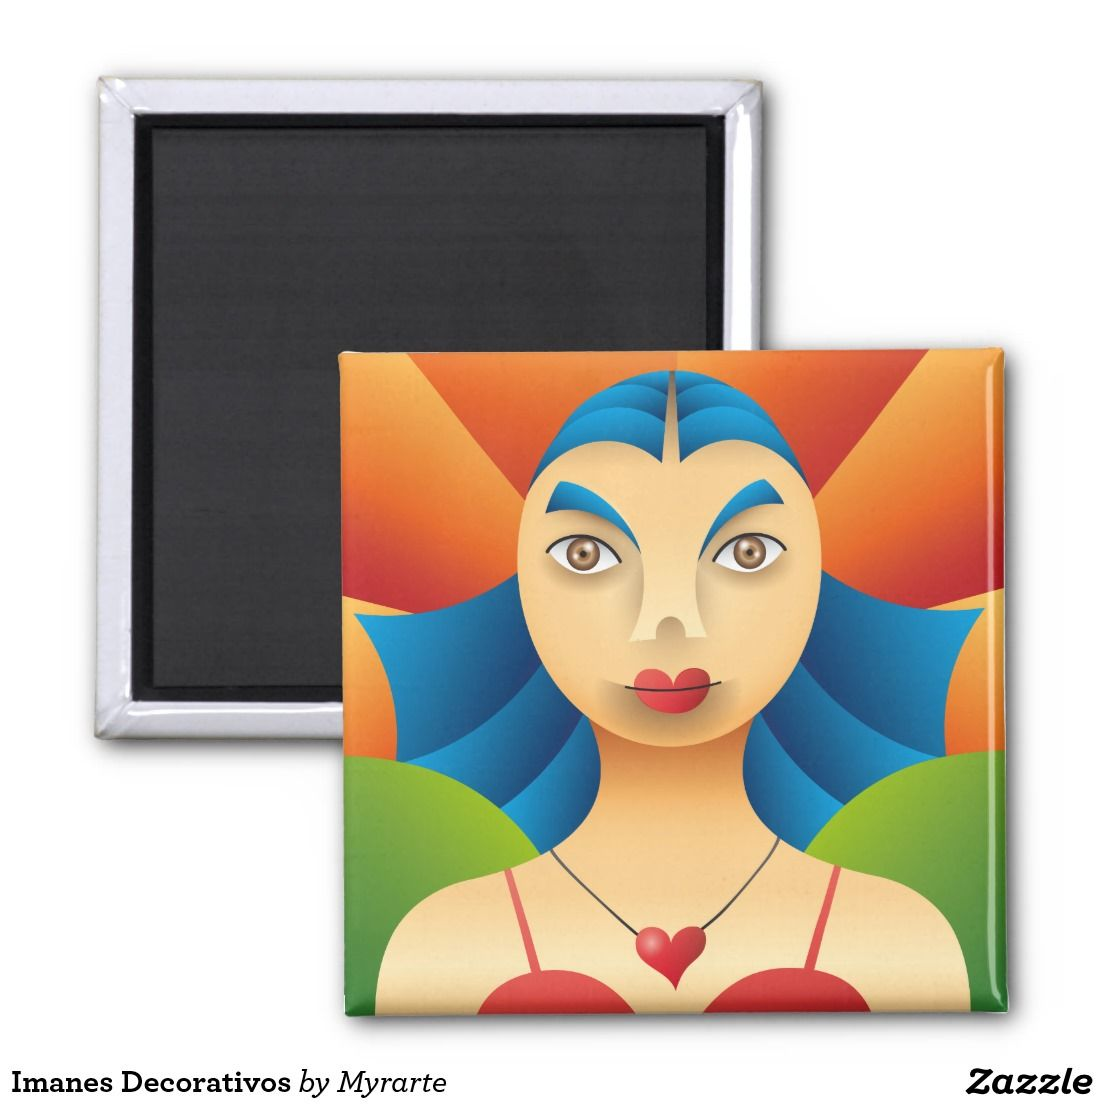 Imanes Decorativos 2 Inch Square Magnet, home decor, decoración. Producto disponible en tienda Zazzle. Decoración para el hogar. Product available in Zazzle store. Home decoration. Regalos, Gifts. Link to product: http://www.zazzle.com/imanes_decorativos_2_inch_square_magnet-147515552132843858?CMPN=shareicon&lang=en&social=true&rf=238167879144476949 #imanes #magnets